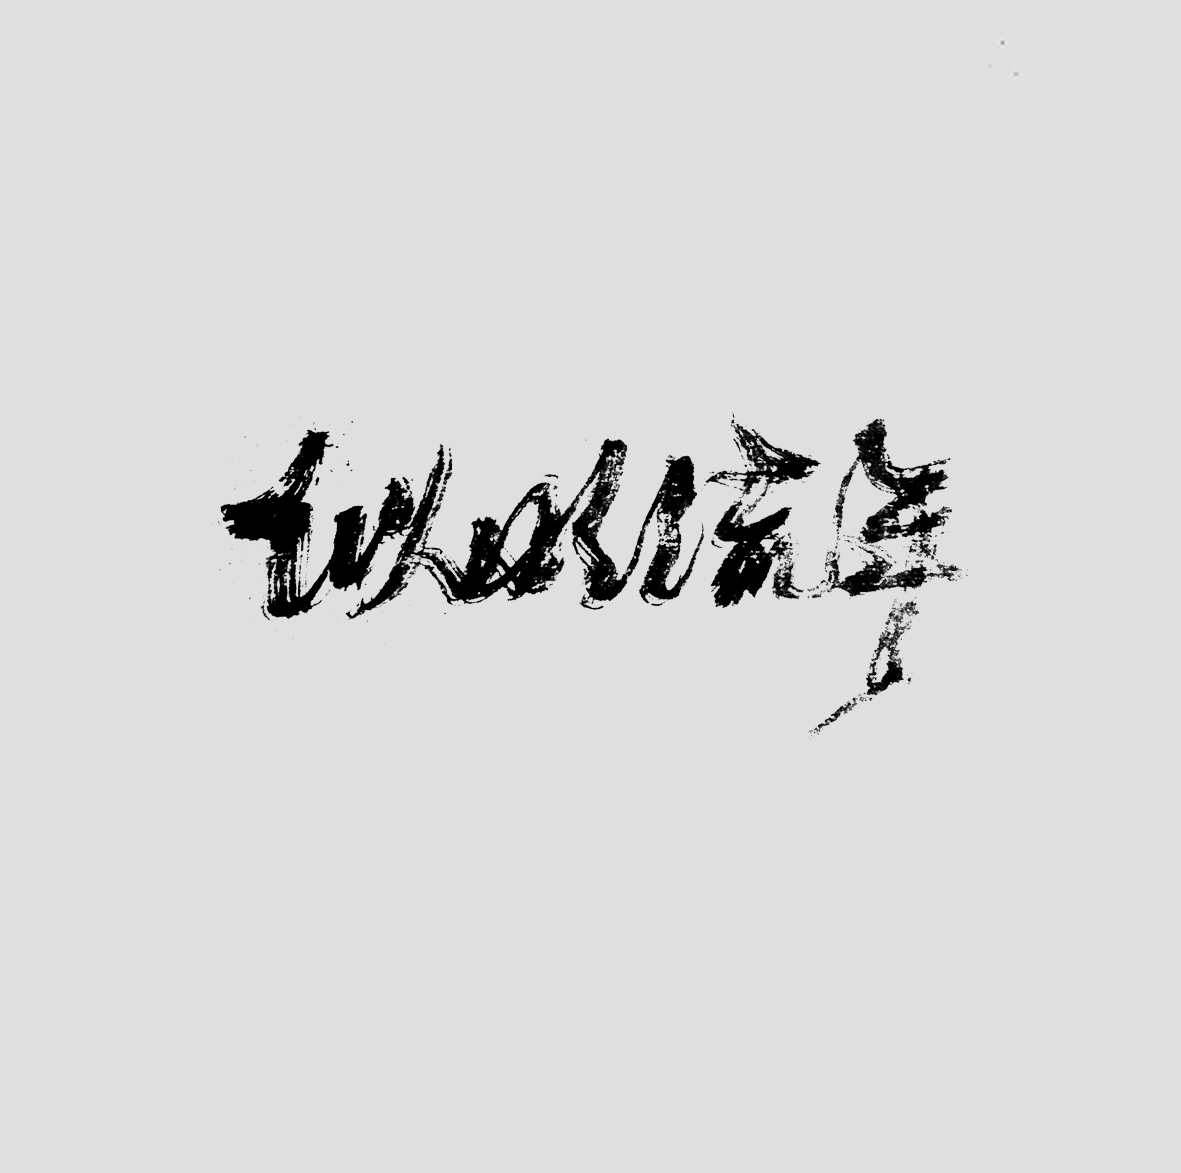 chinesefontdesign.com 2017 08 02 14 02 57 808290 21P The most cool and heroic Chinese brush calligraphy